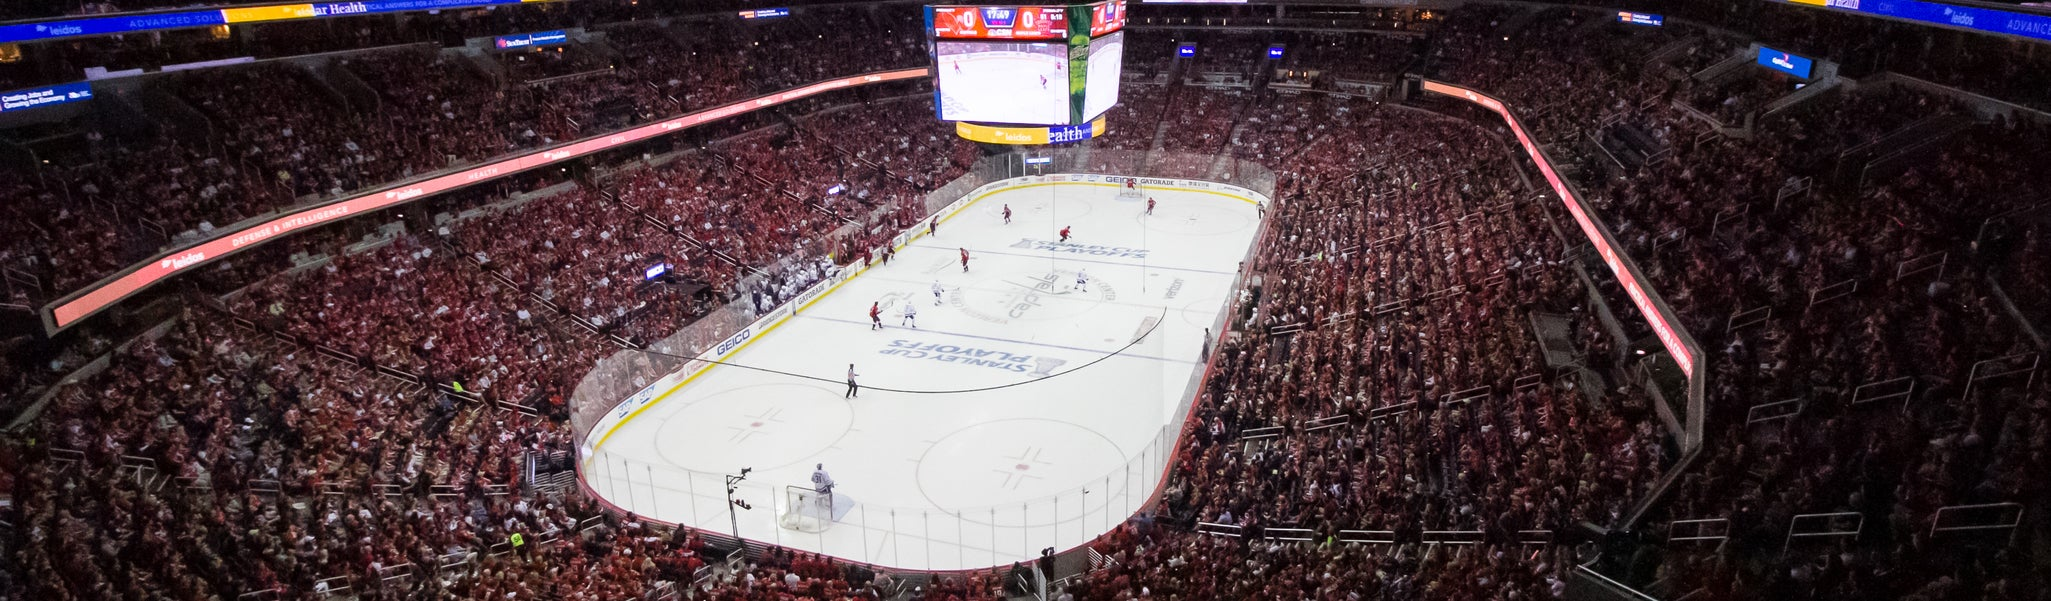 Seat view from Mezzanine End 410 at Capital One Arena